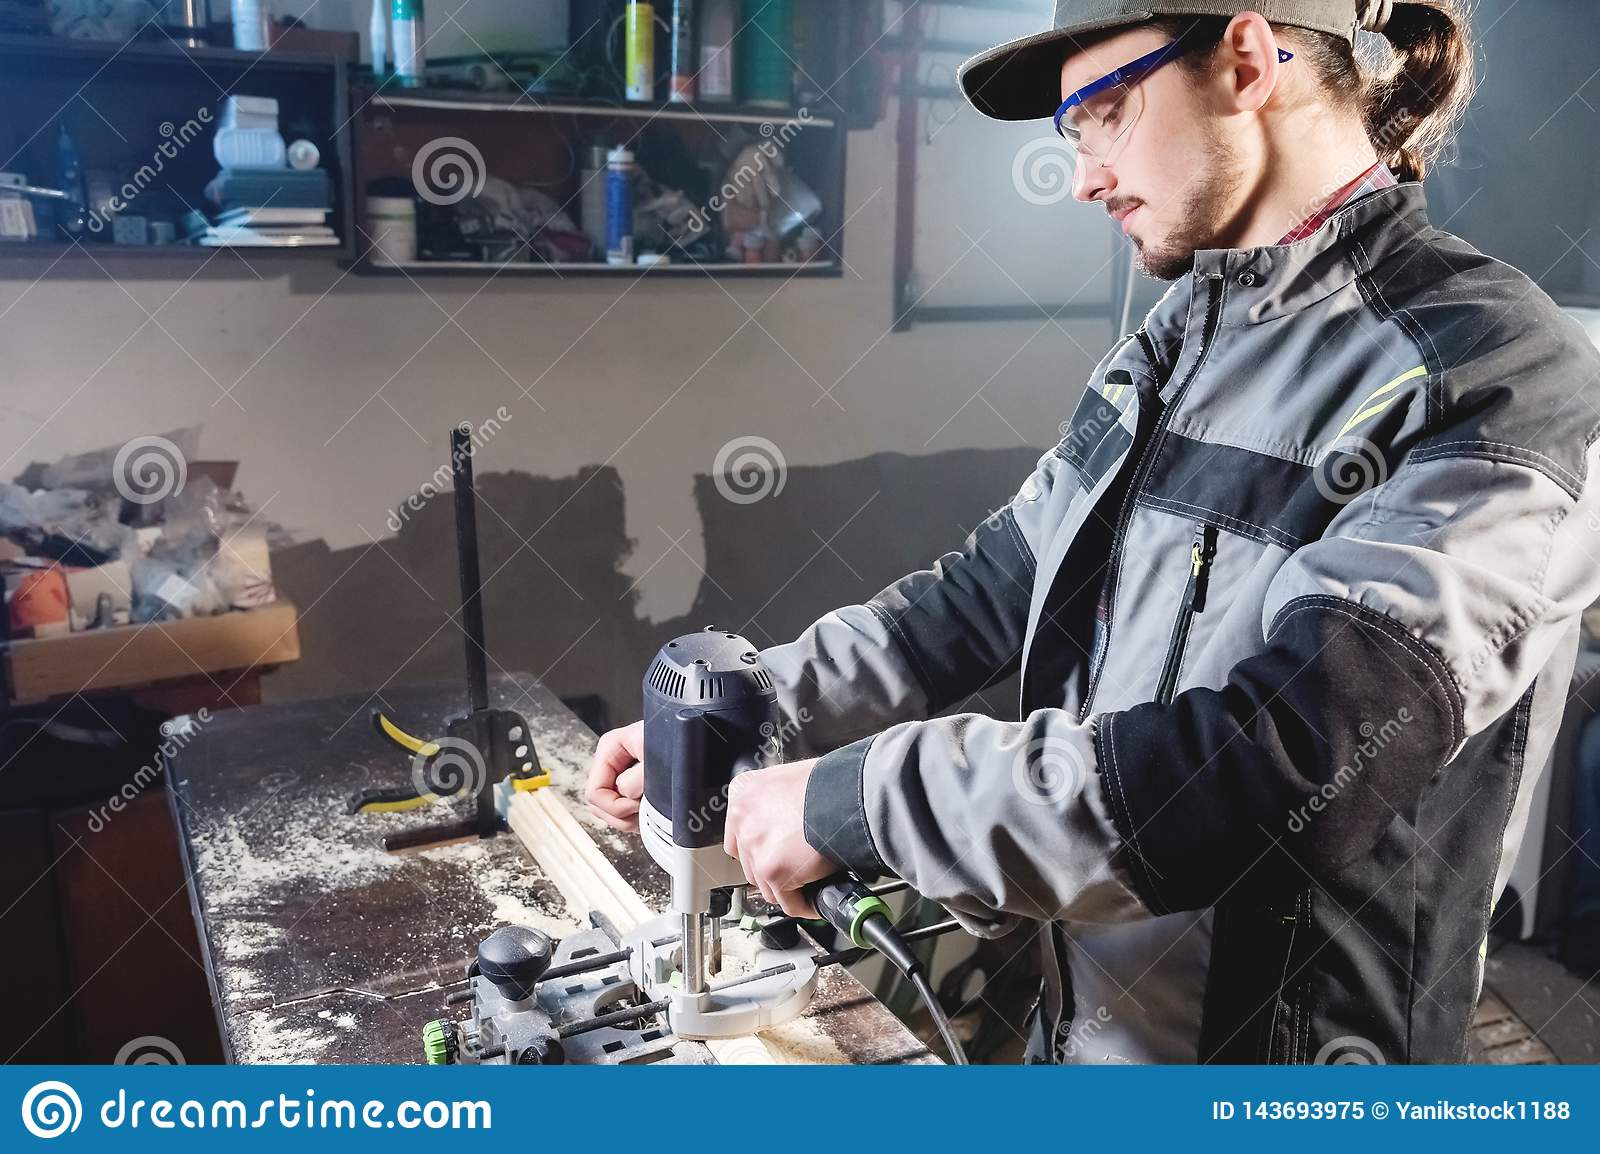 Portrait of a young carpenter joiner with electric milling cutter in the hands of a worker in a home workshop. Starting